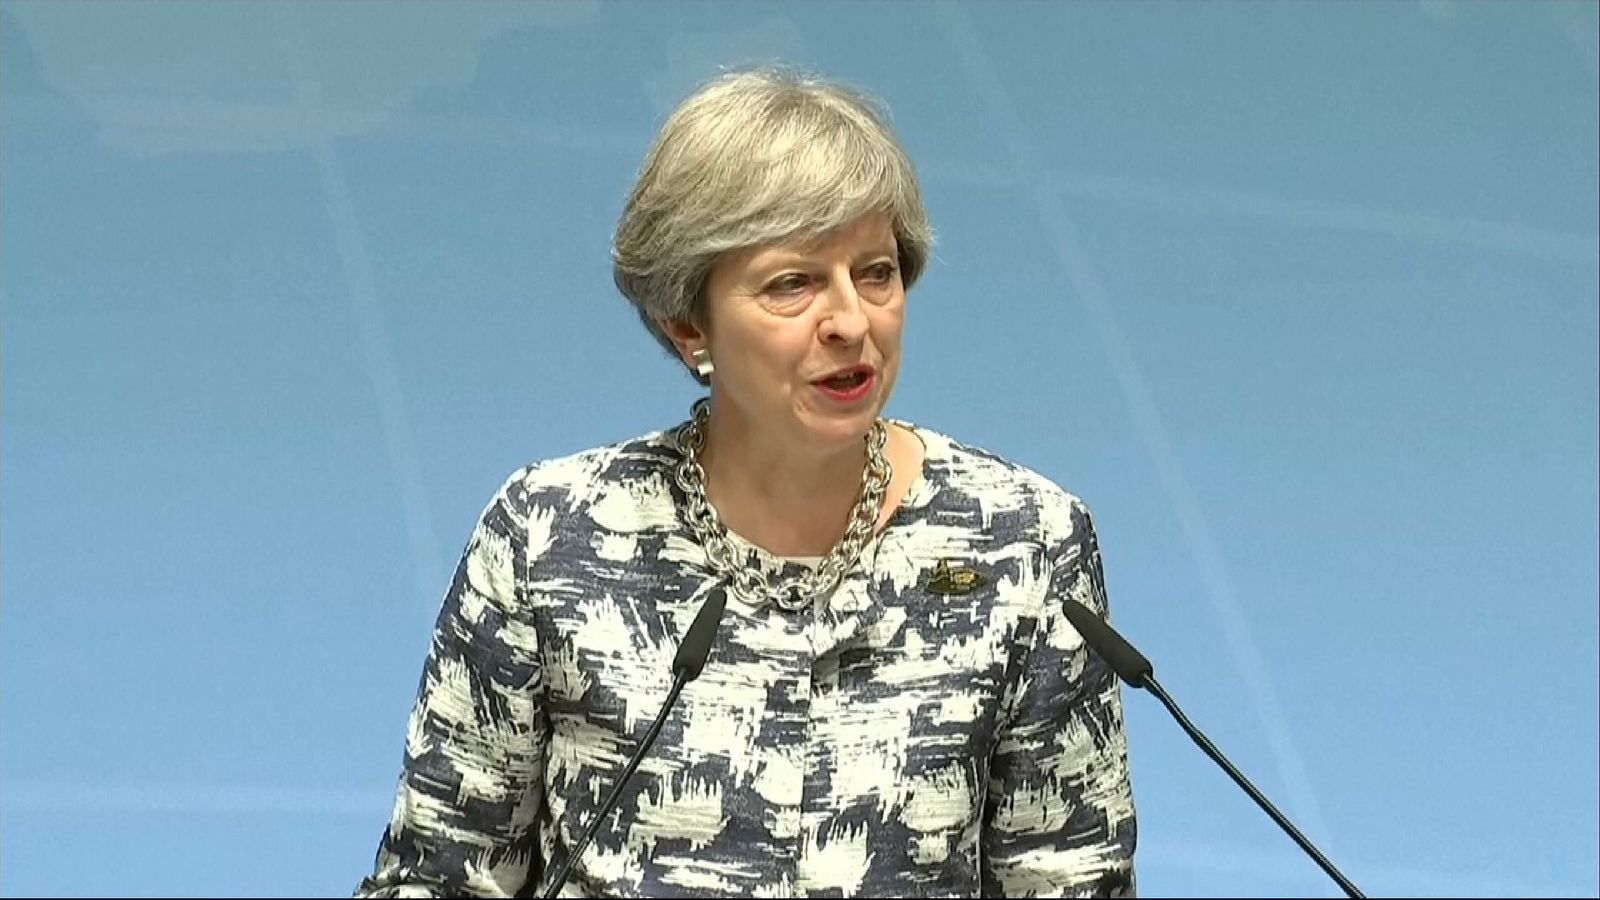 Theresa May speaking at the G20 in Hamburg